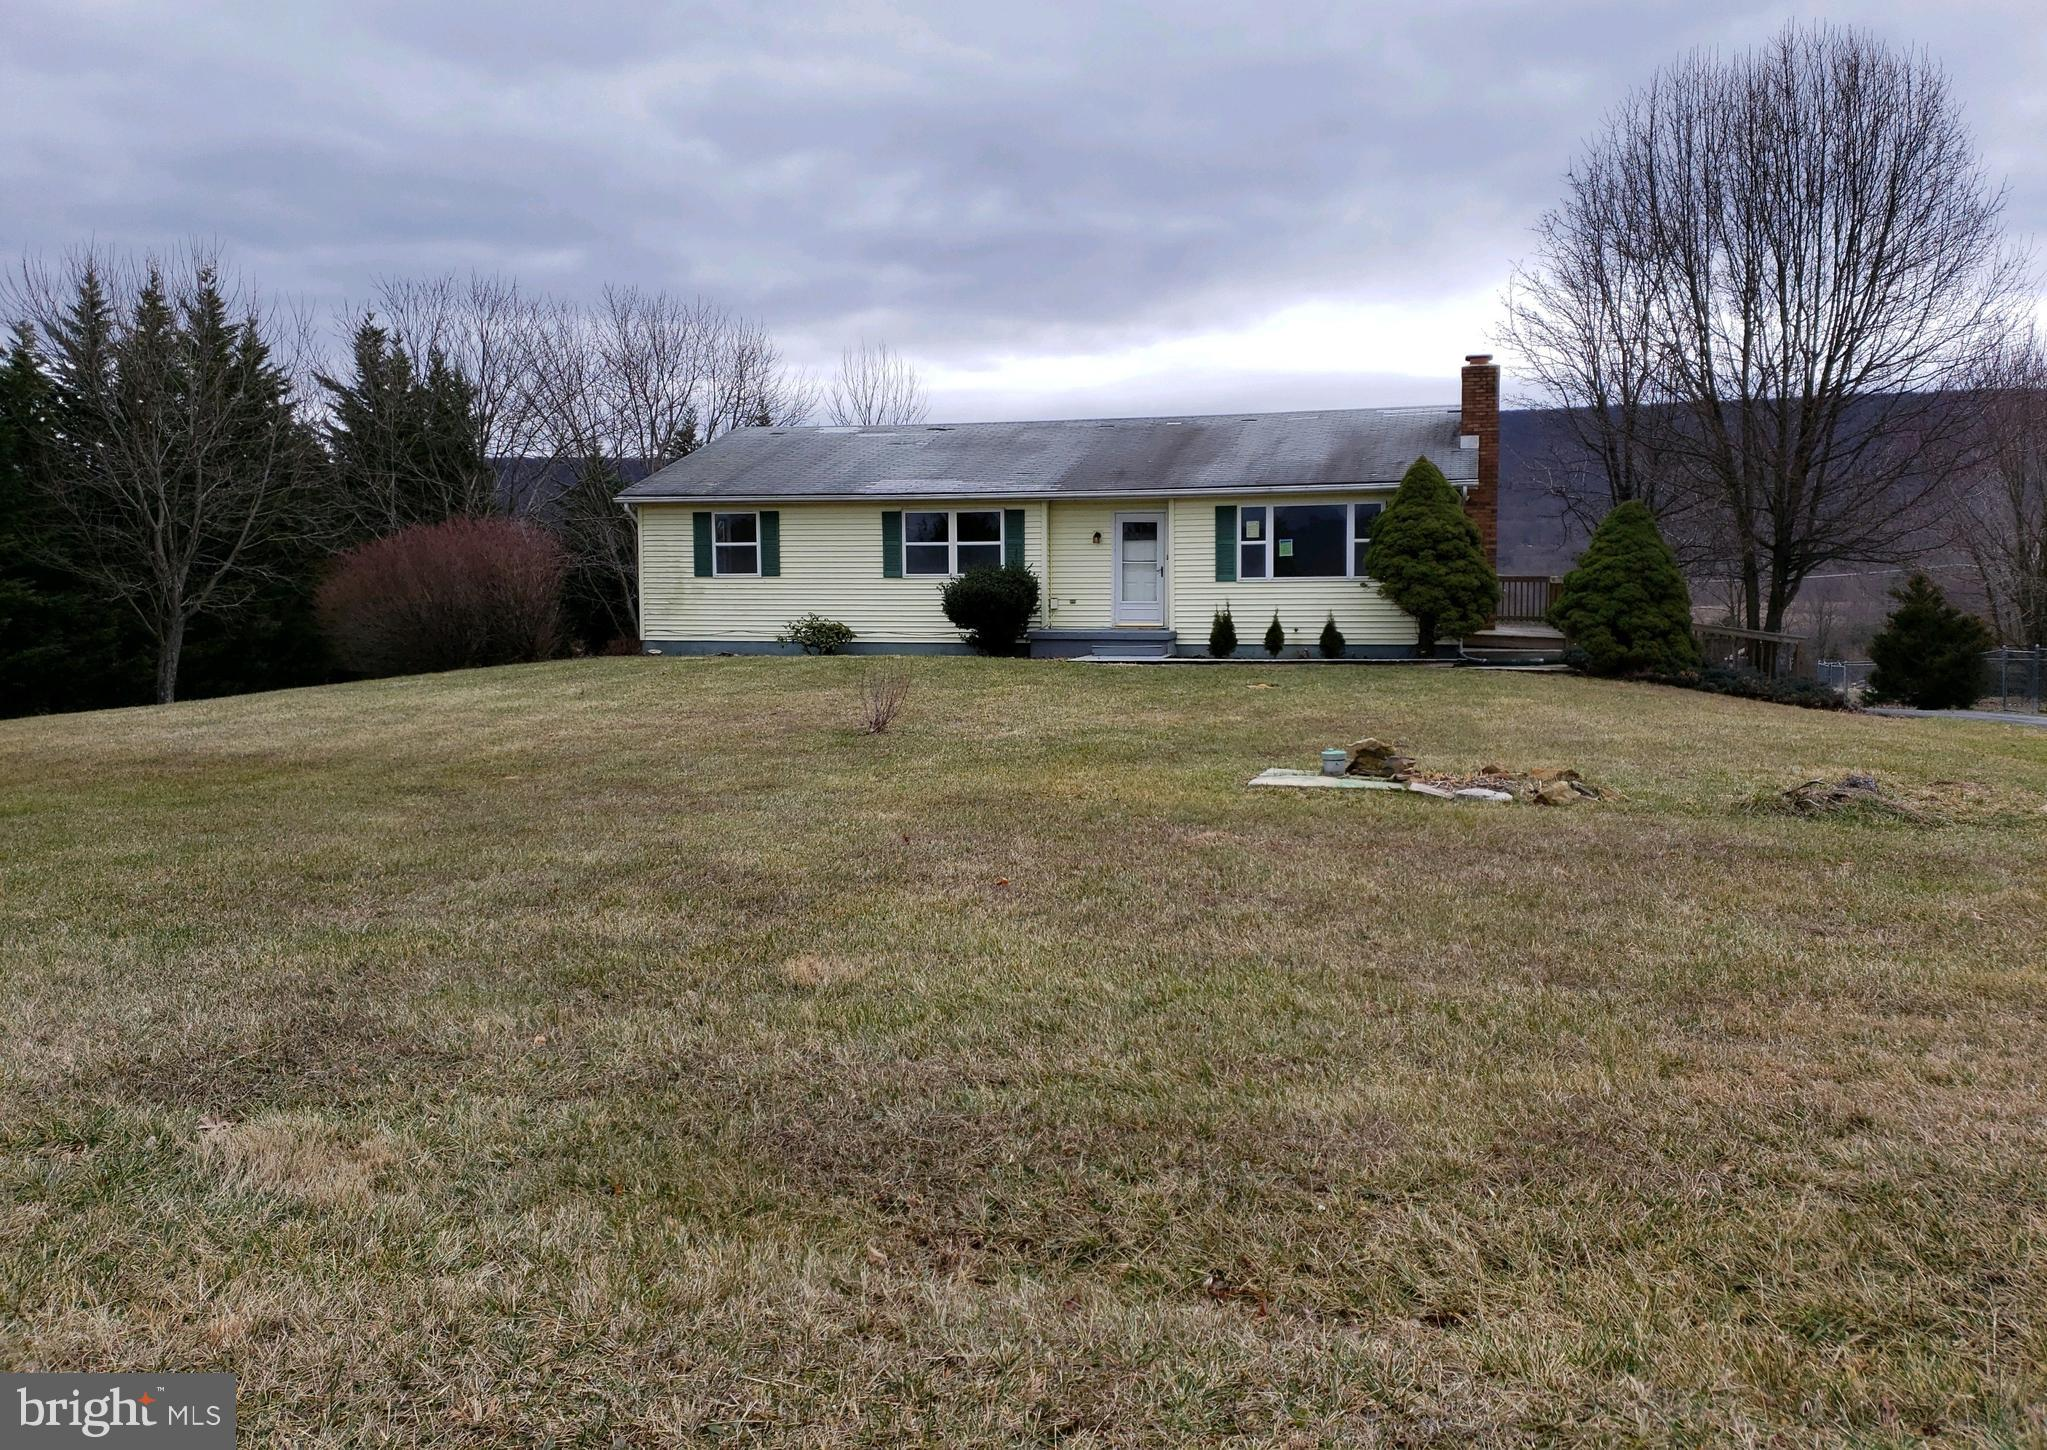 Rancher featuring  3 BR, 3 Bath, home with Additional Kitchen, LR, and Bath inwalkout Basement with attached 2 car Garage, lovely scenic views, country living.